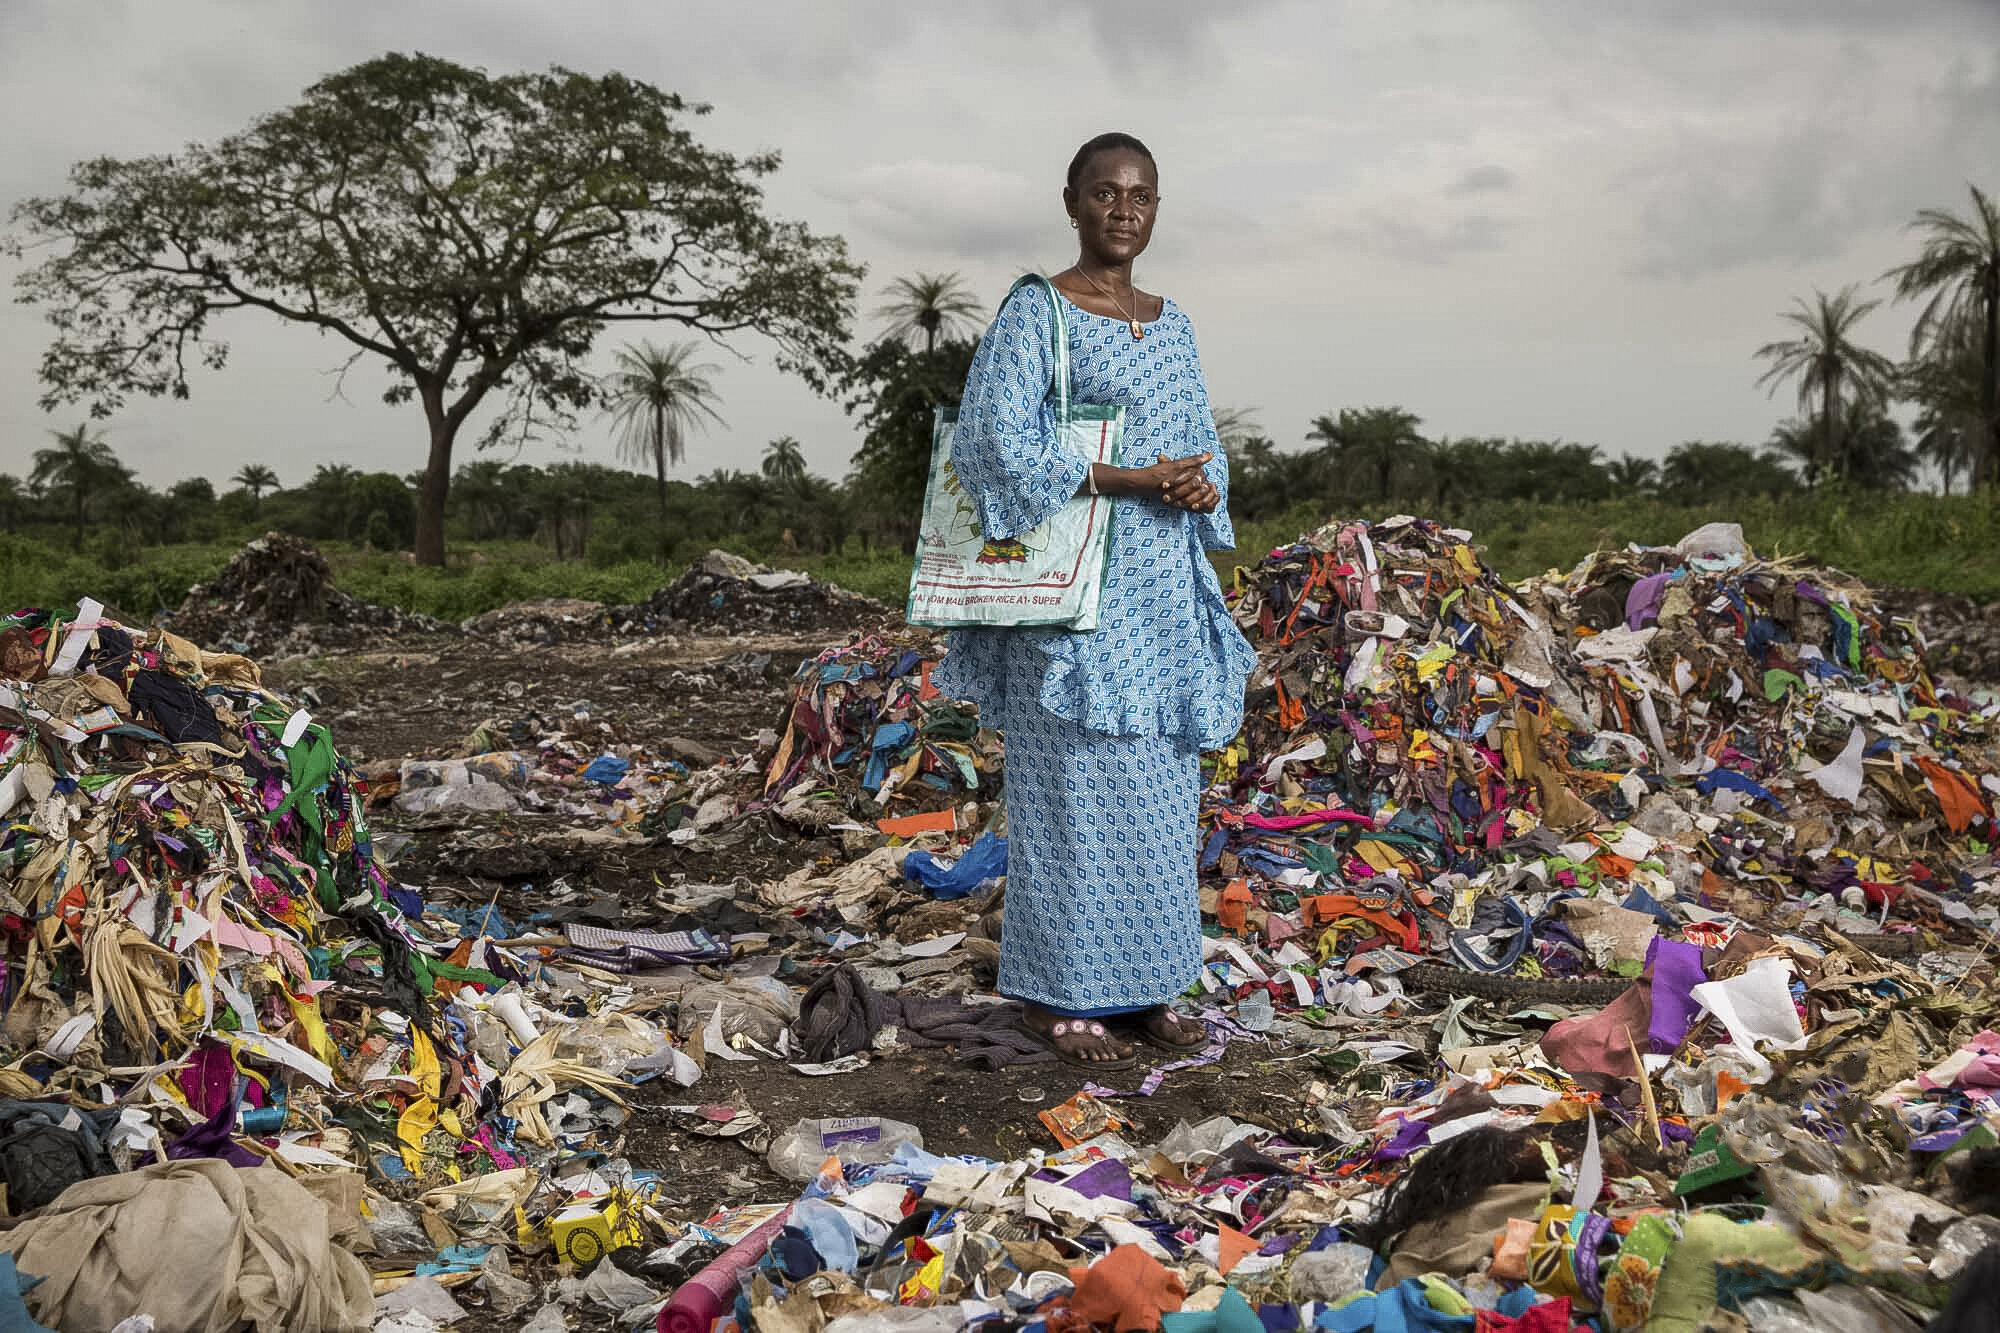 Isatou Ceesay - The Queen of Waste Plastic